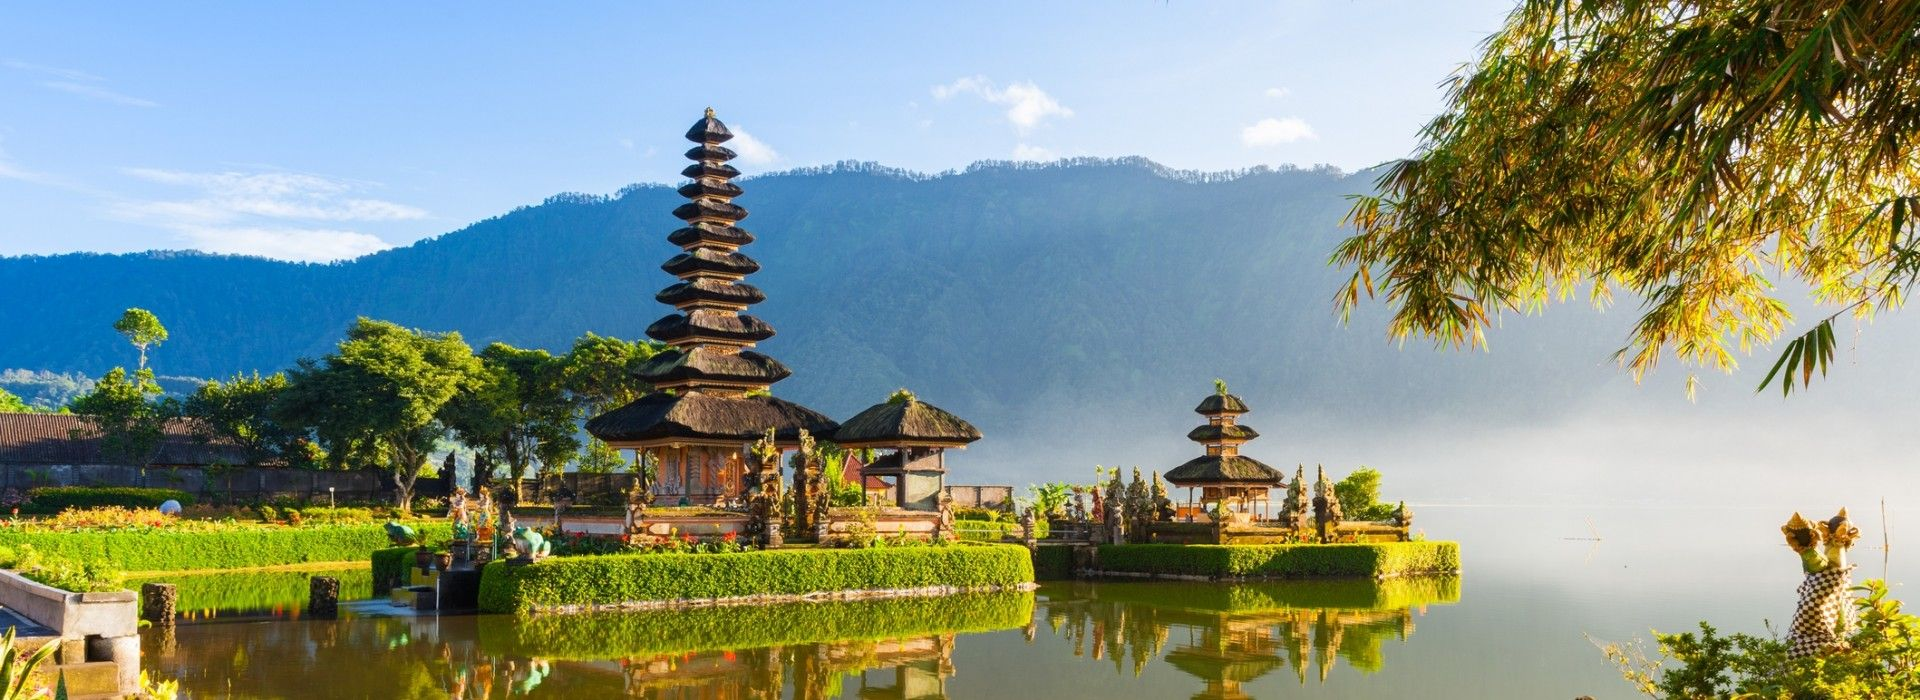 Wildlife, landscapes and nature Tours in Ubud